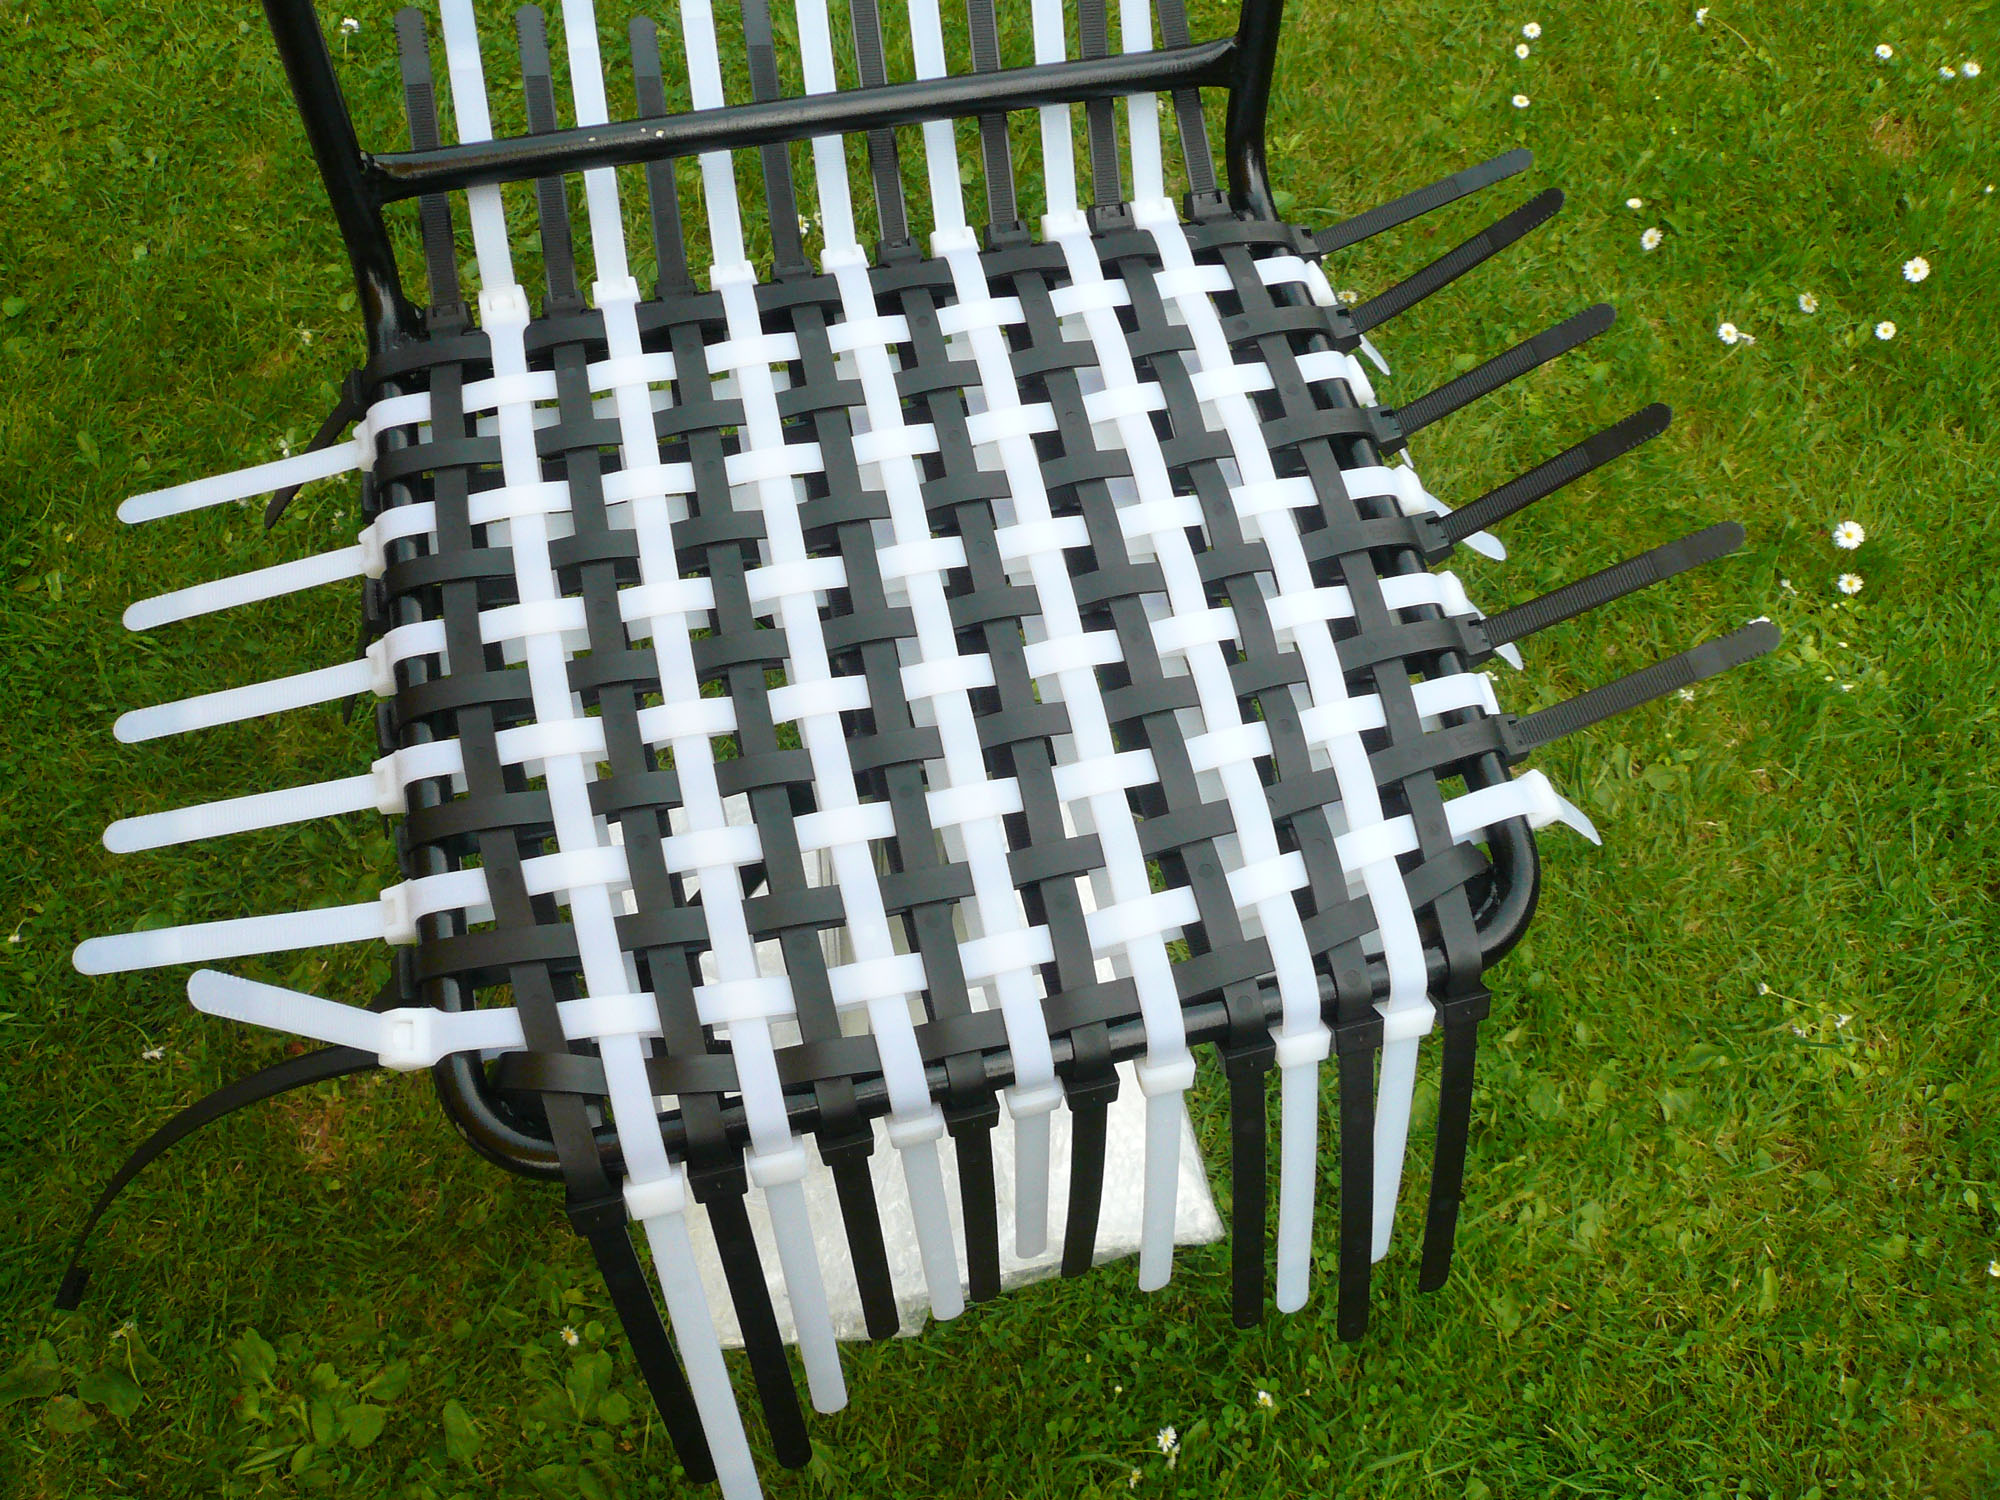 Cable Tie Chair 2